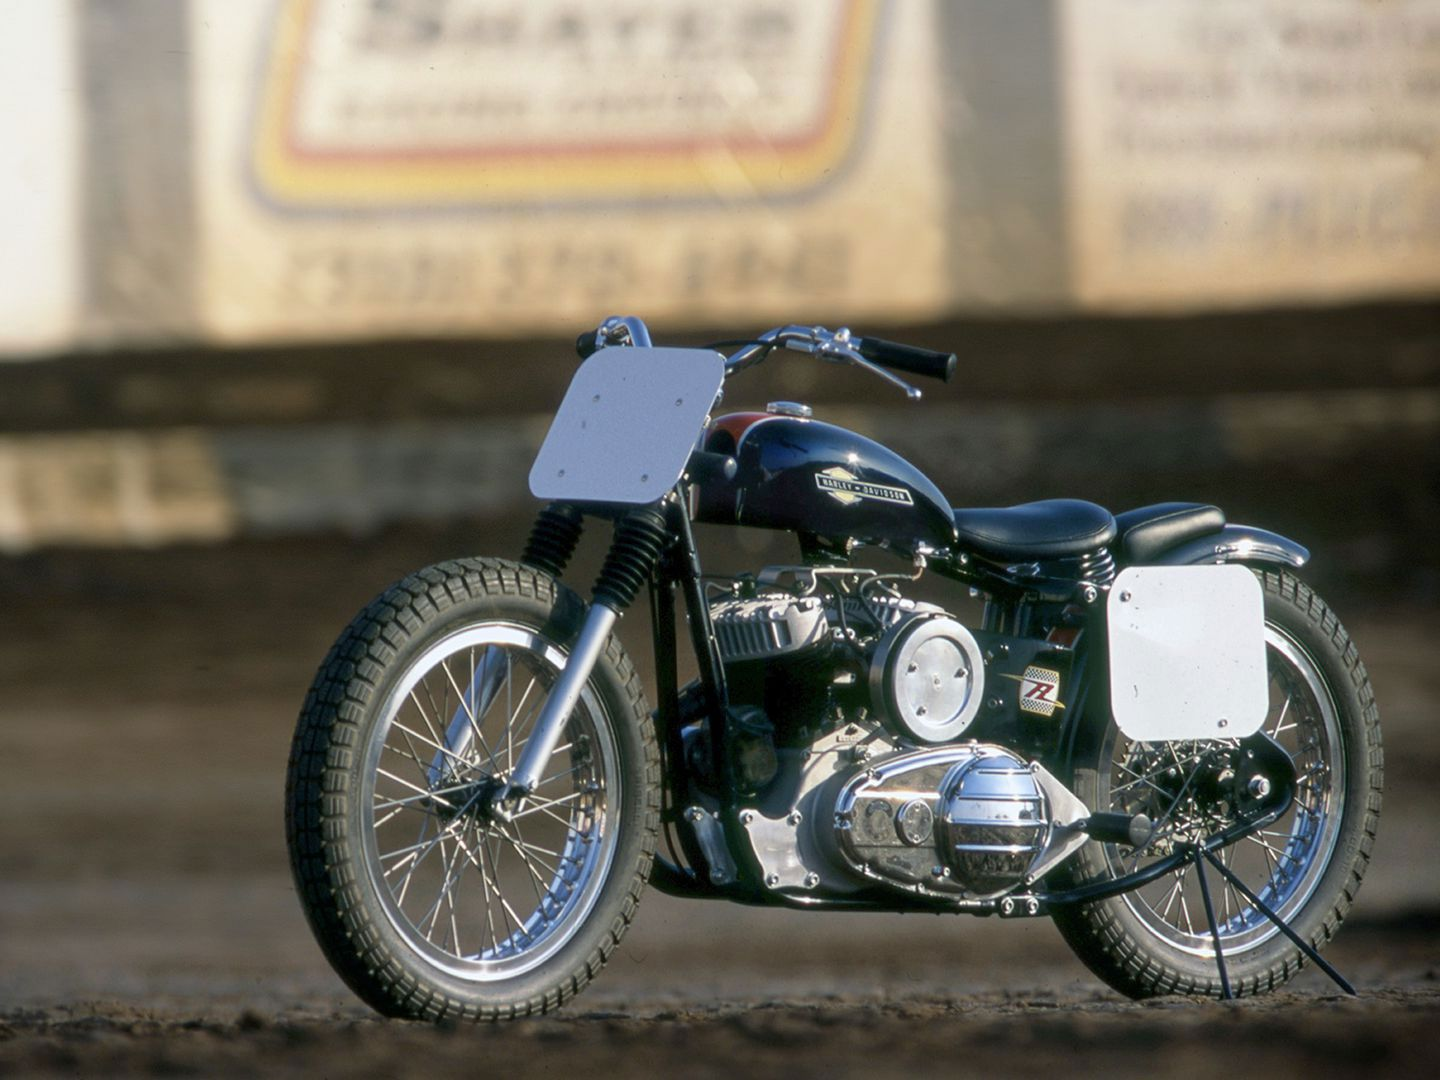 In 1952 Harley-Davidson rolled out the unit-construction K-model (and its KR racer counterpart) to compete with lightweight British machines of the era.